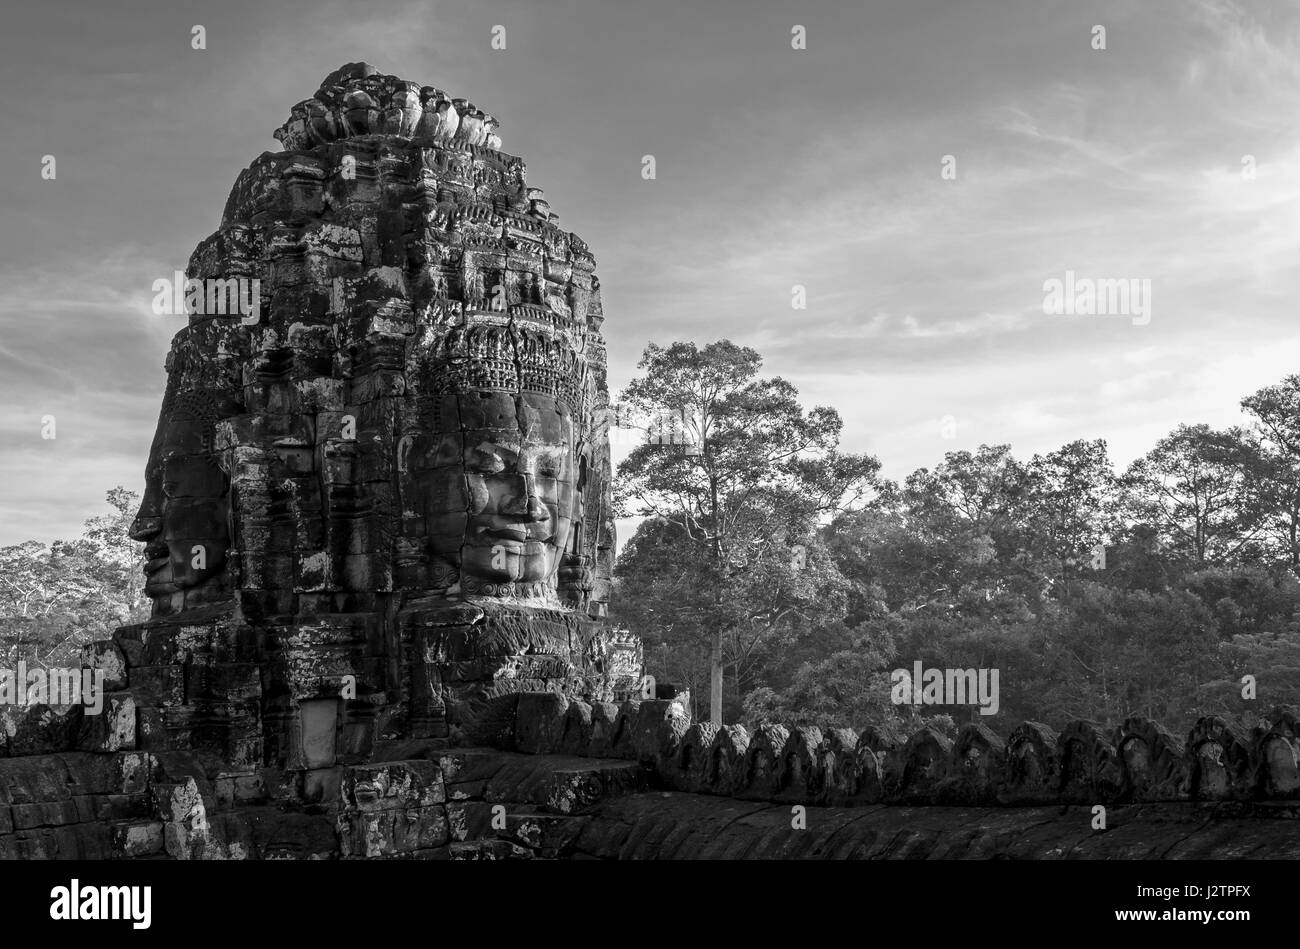 Black and white photograph of a smiling buddha head inside the bayon temple with the jungle in the background in angkor thom cambodia